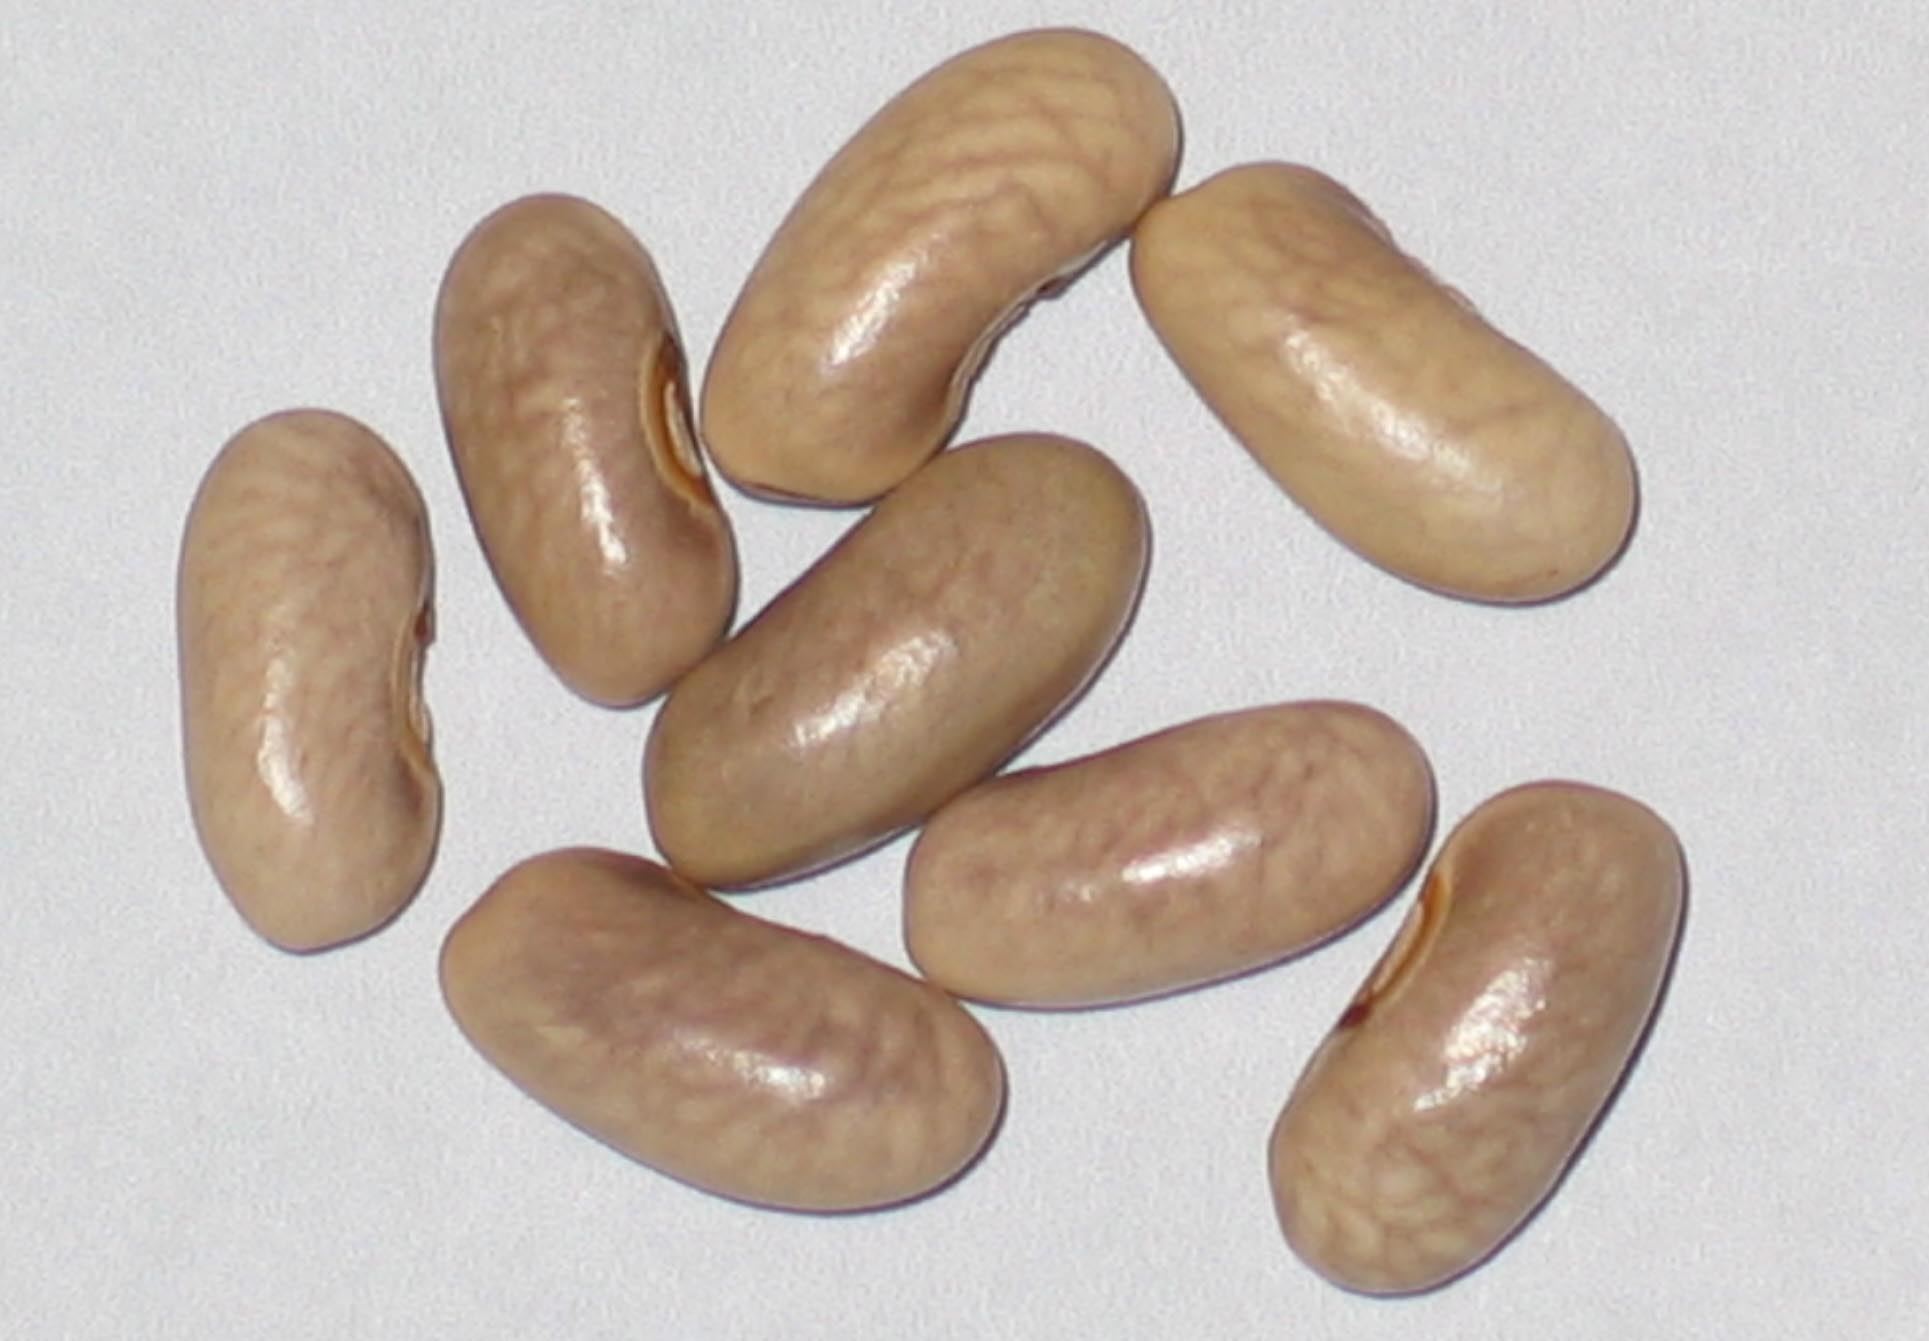 image of Purple Amazon beans